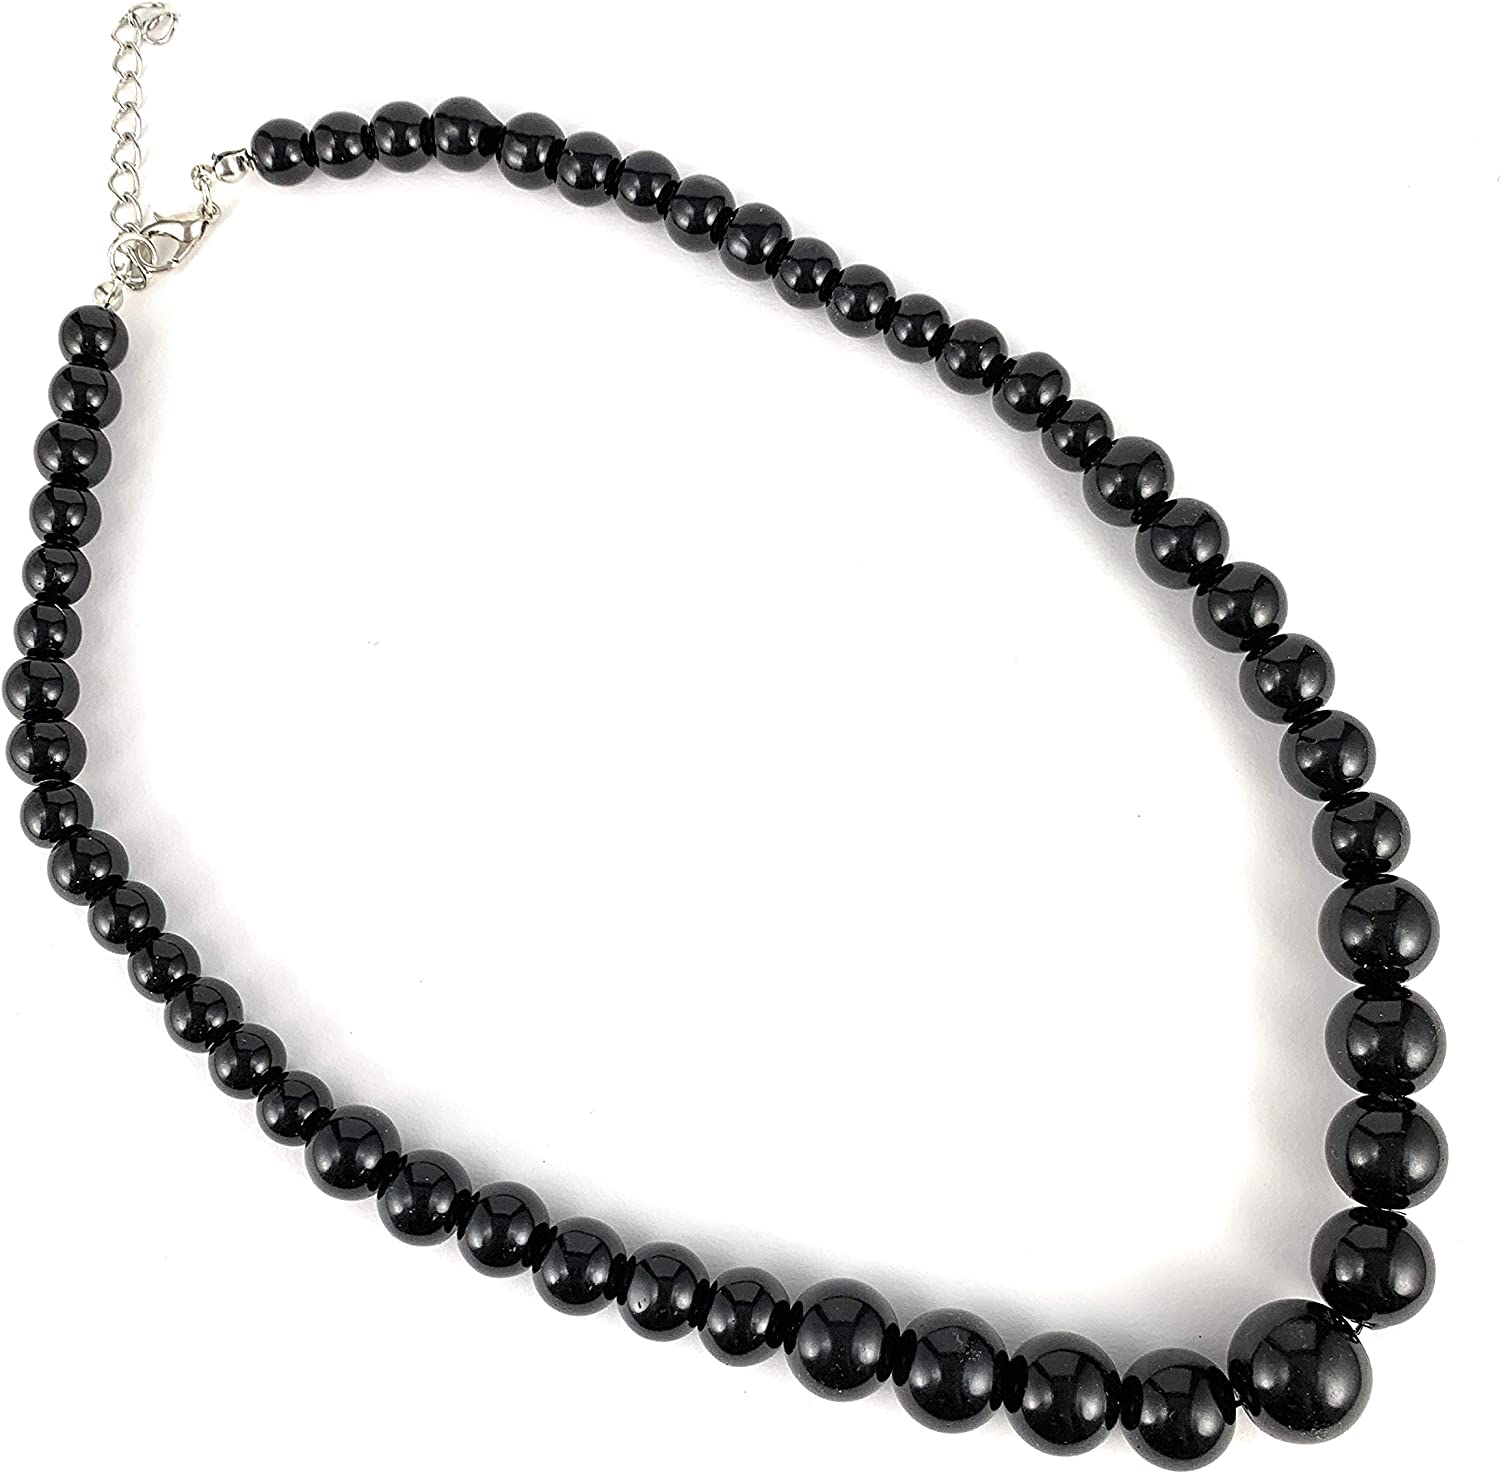 Black faux pearl necklace graduated round bead beaded necklace 18 inches long plus 2inch extender